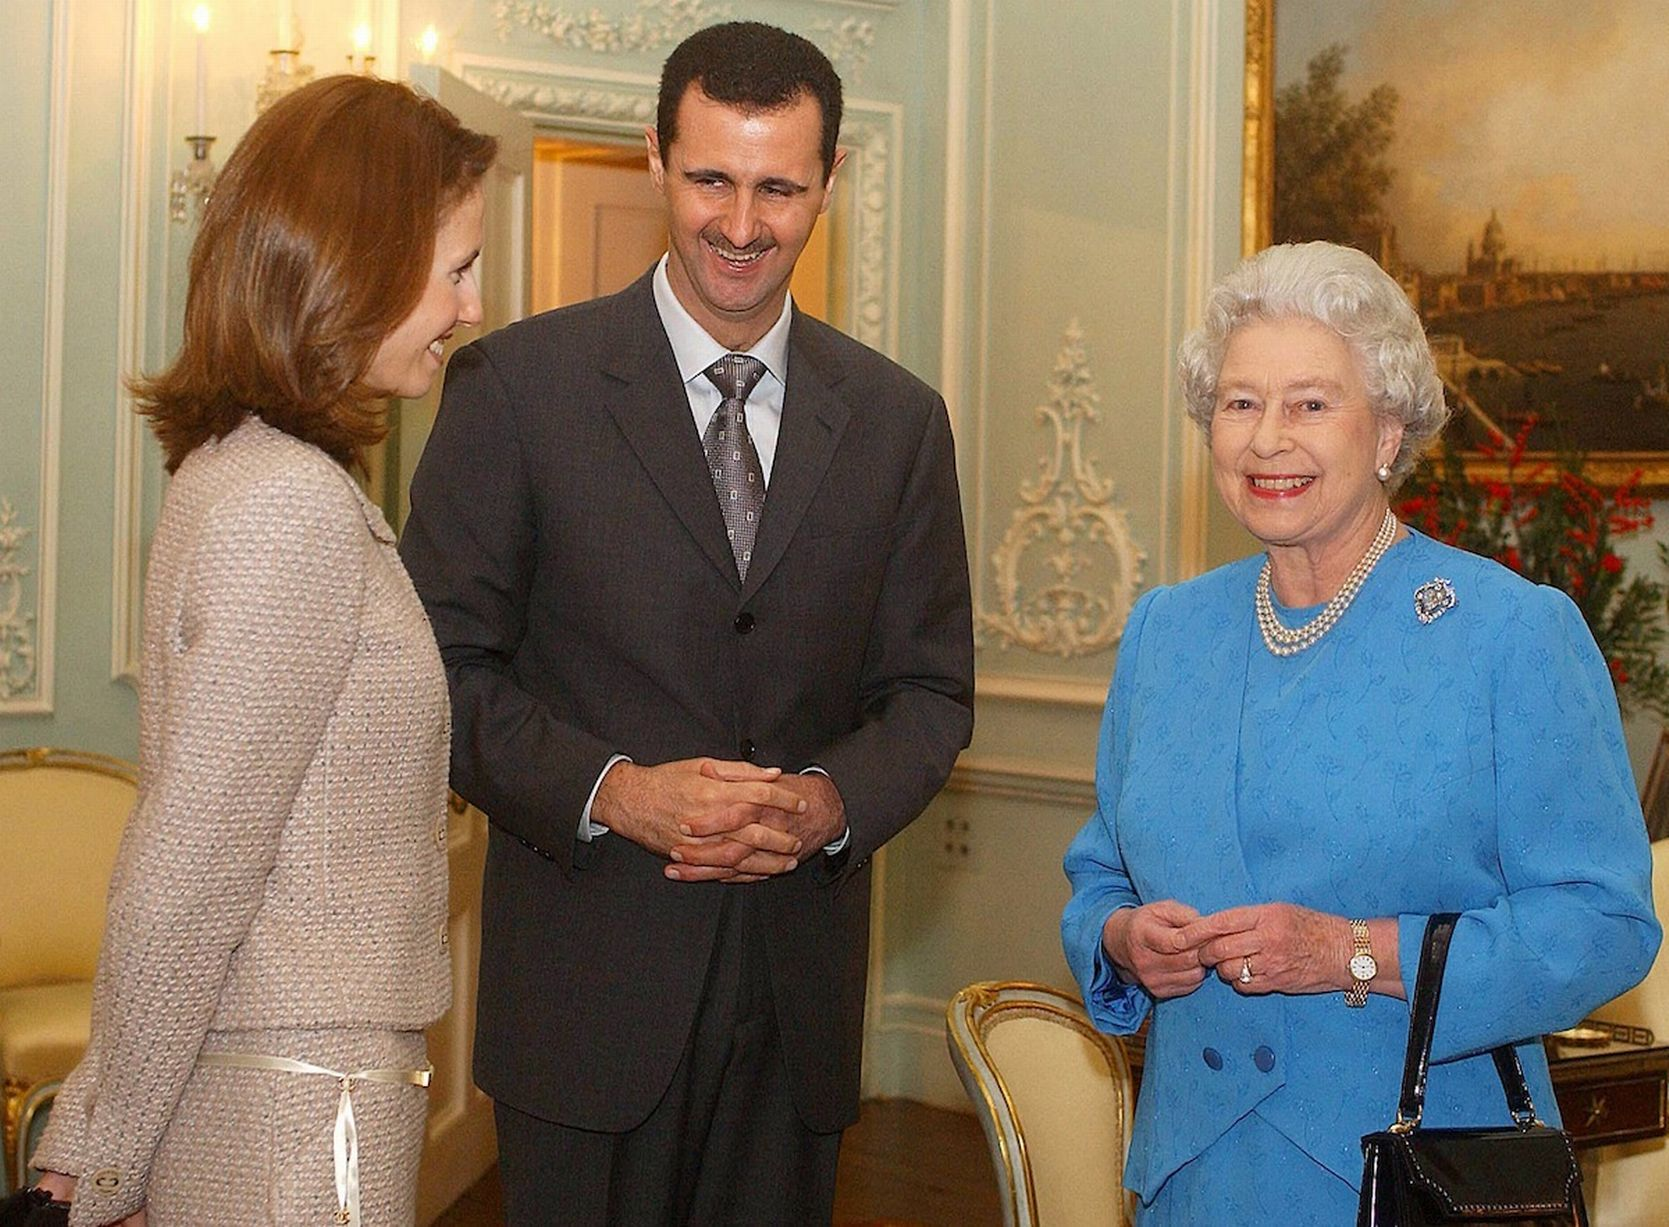 https://i1.wp.com/i2.mirror.co.uk/incoming/article7782365.ece/ALTERNATES/s1227b/Queen-Elizabeth-II-and-Syrias-President-Bashar-al-Assad-with-wife-Asma.jpg